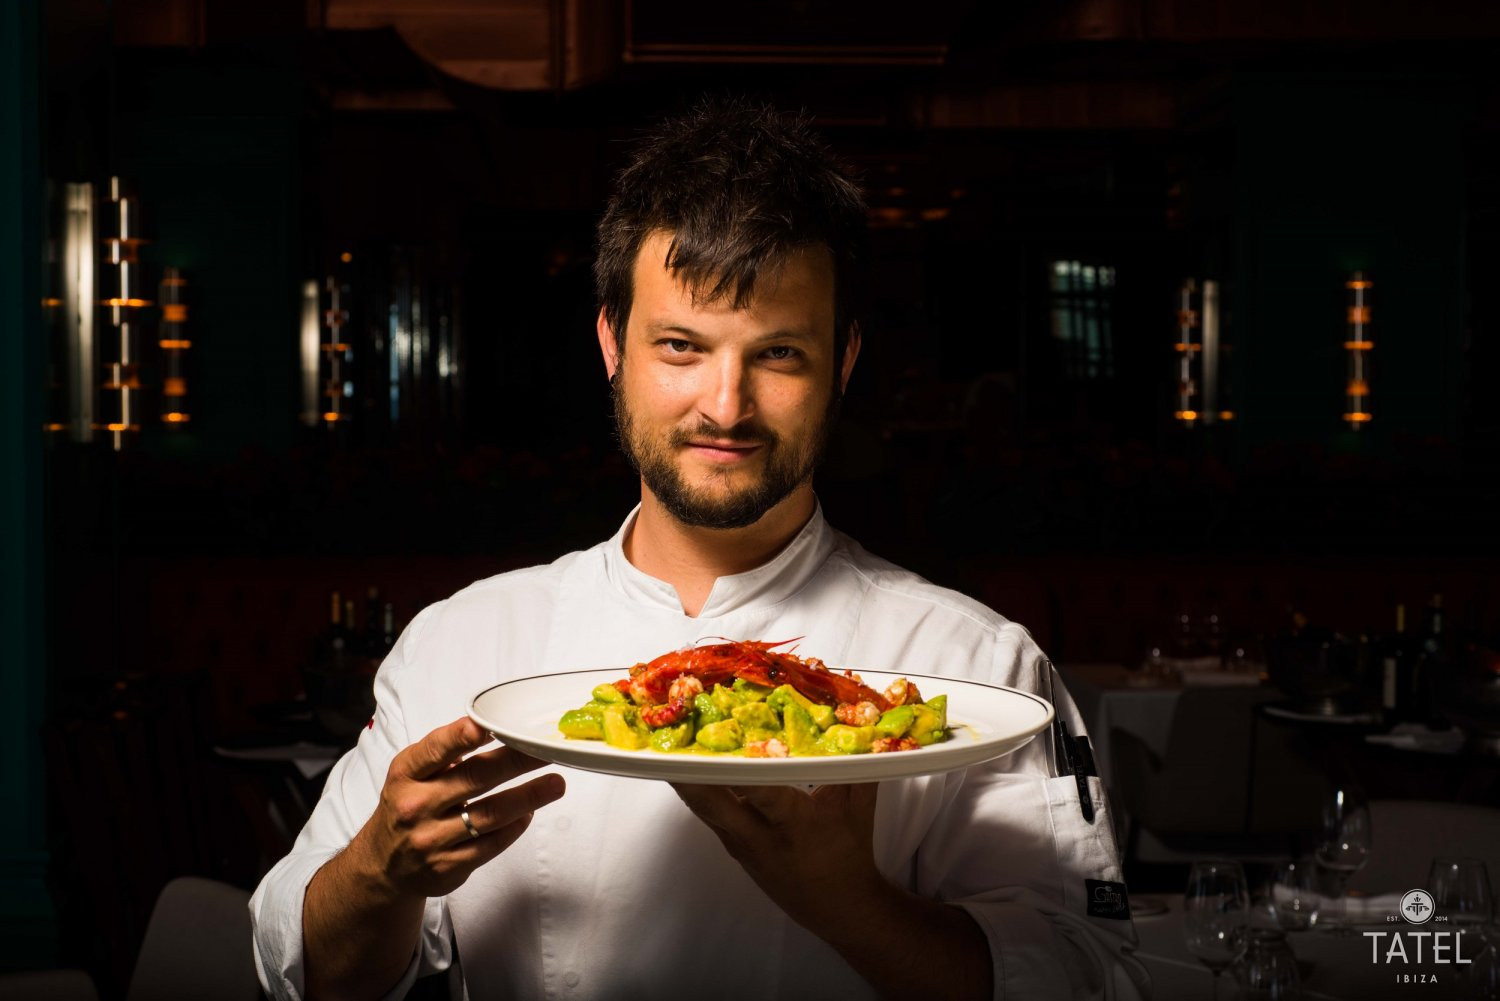 Nacho Chicharro, young and creative, Tatel Ibiza's head chef